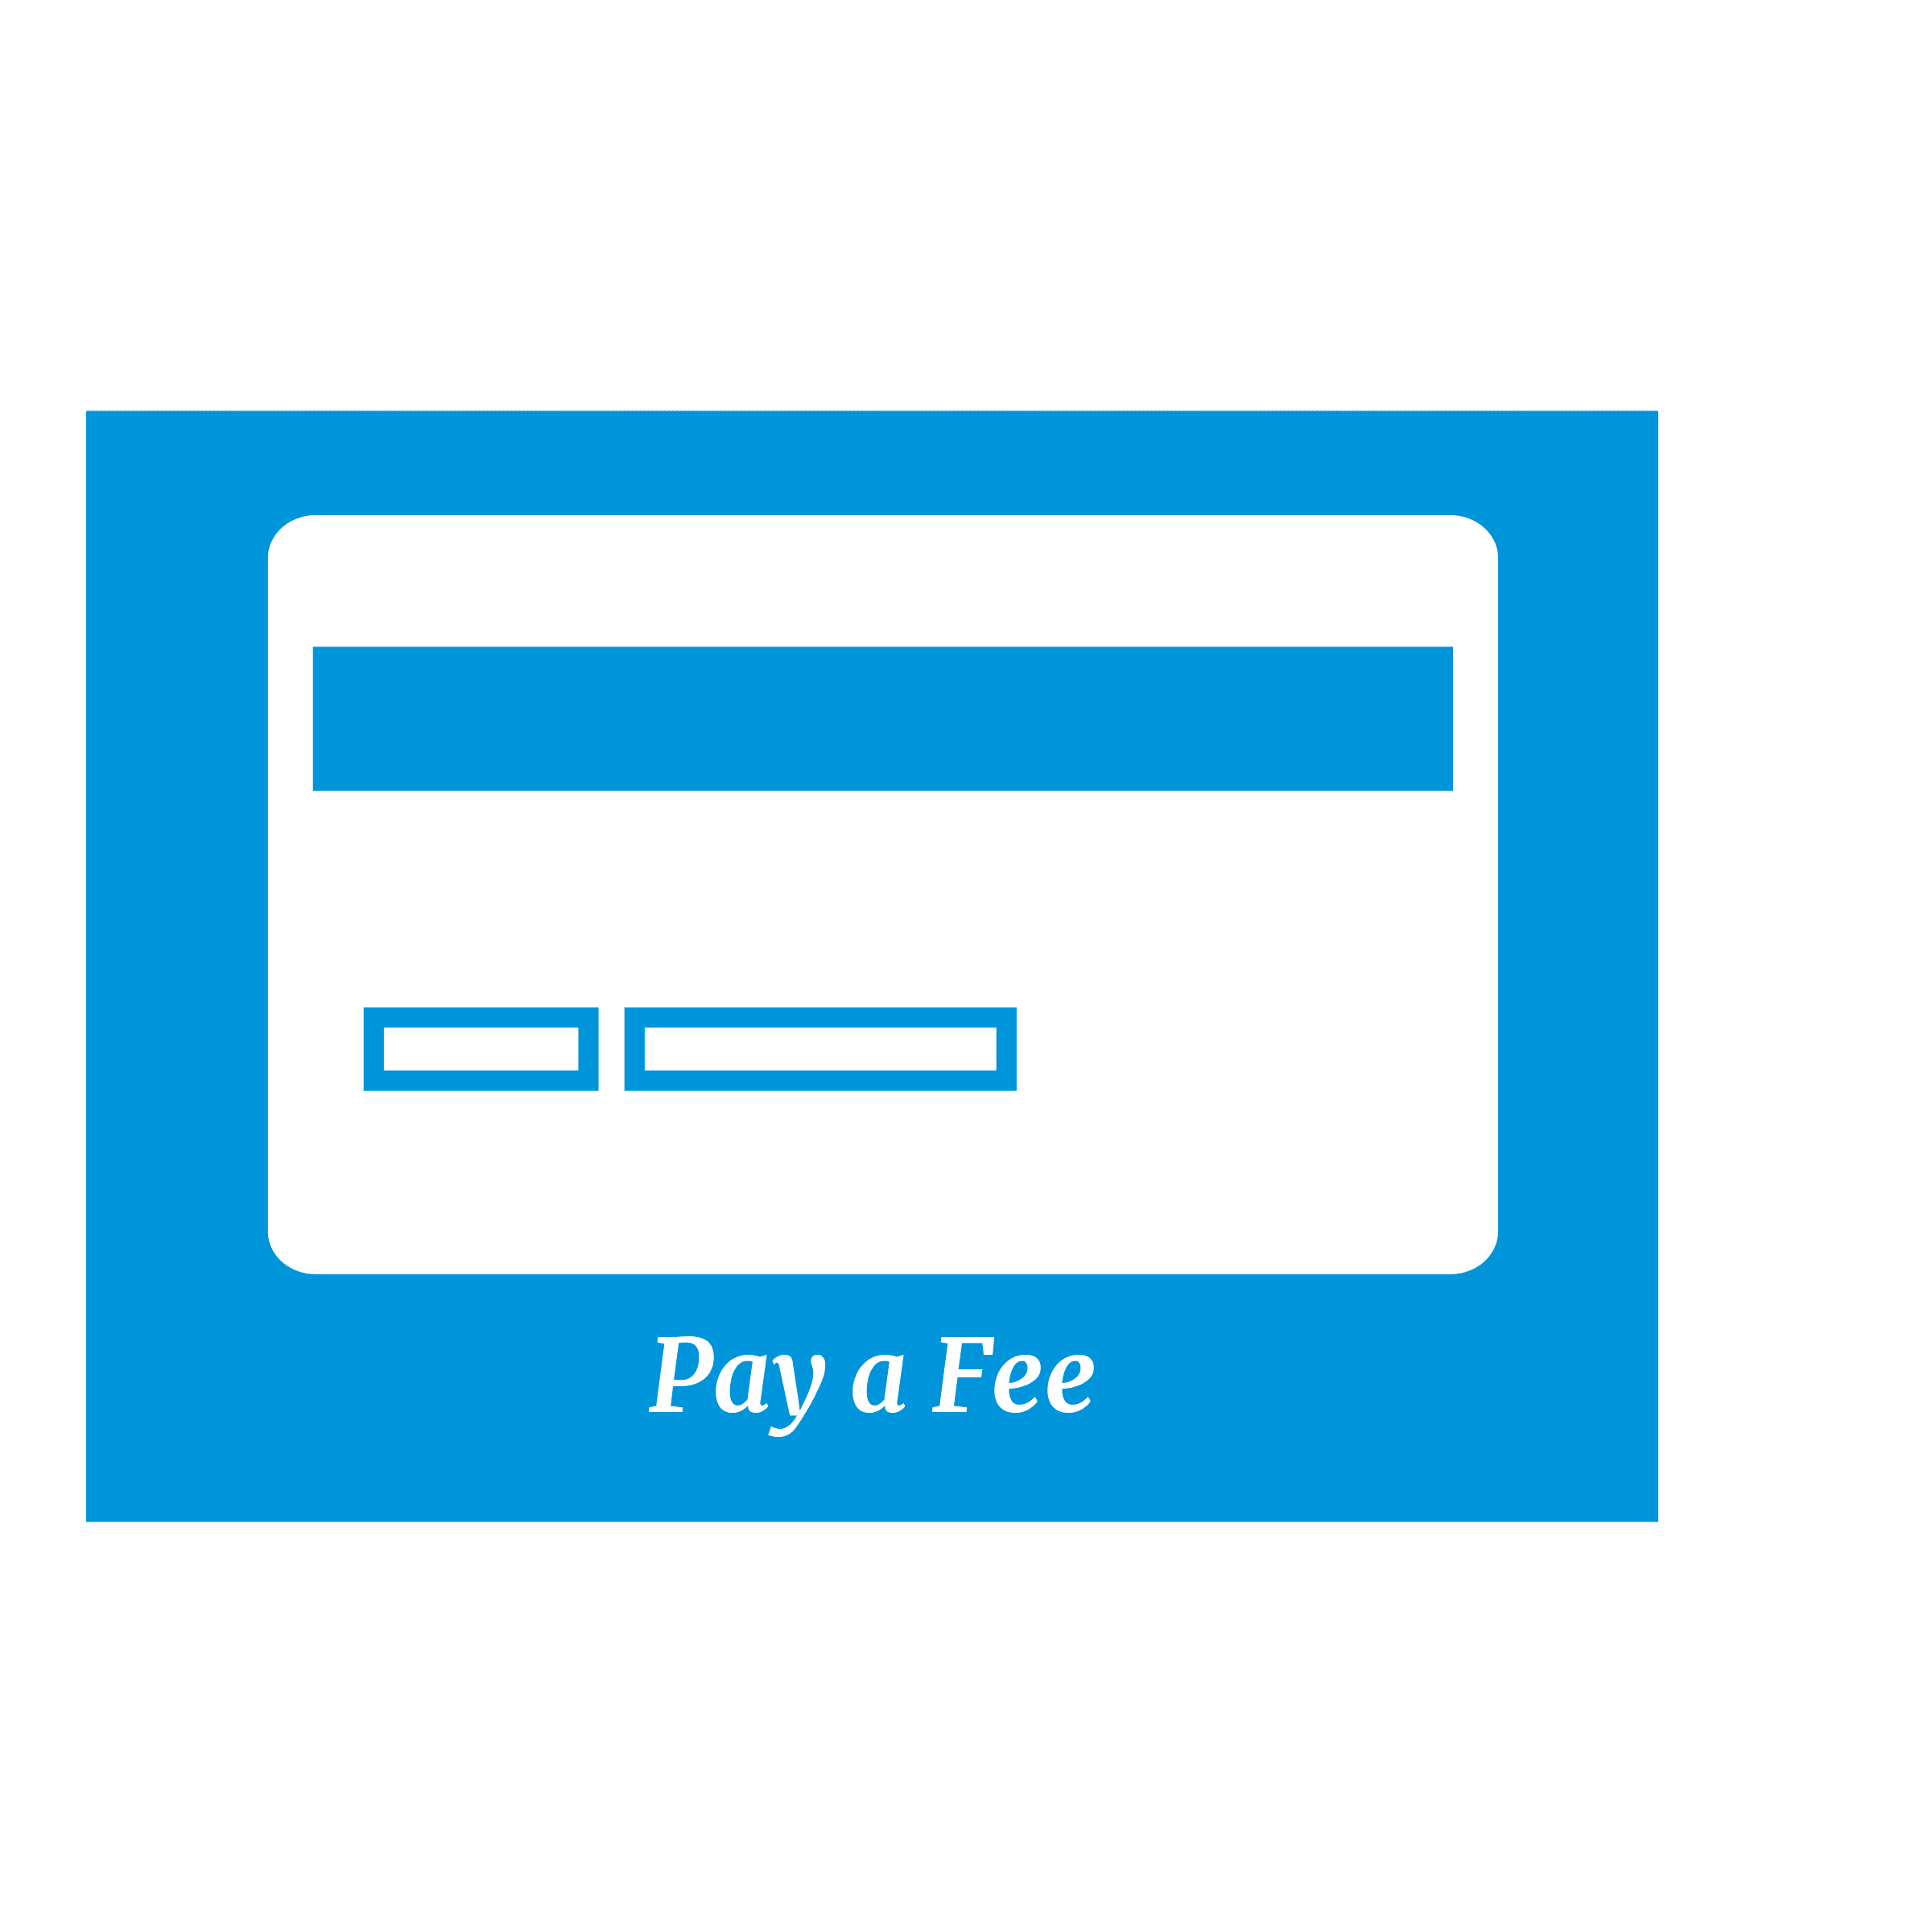 Pay Fees Button Opens in new window